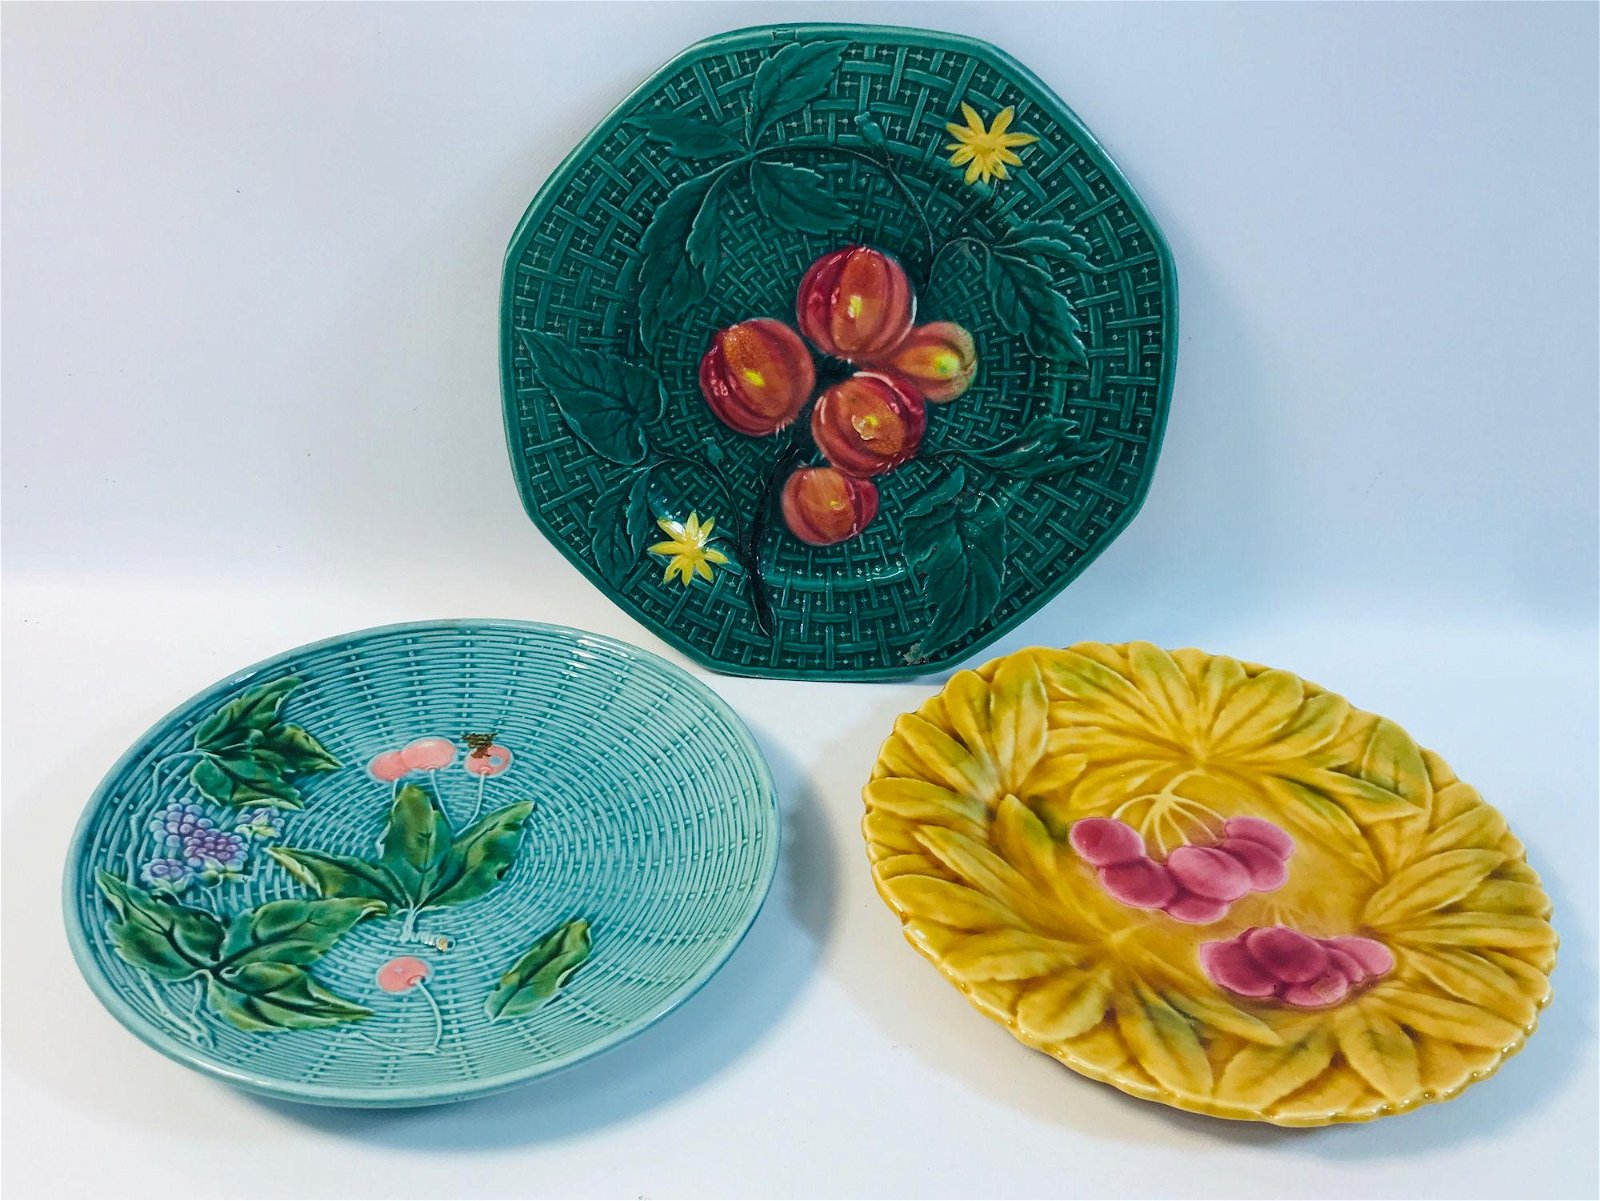 3 MAJOLICA PLATES - YELLOW WITH CHERRIES, TURQUUISE